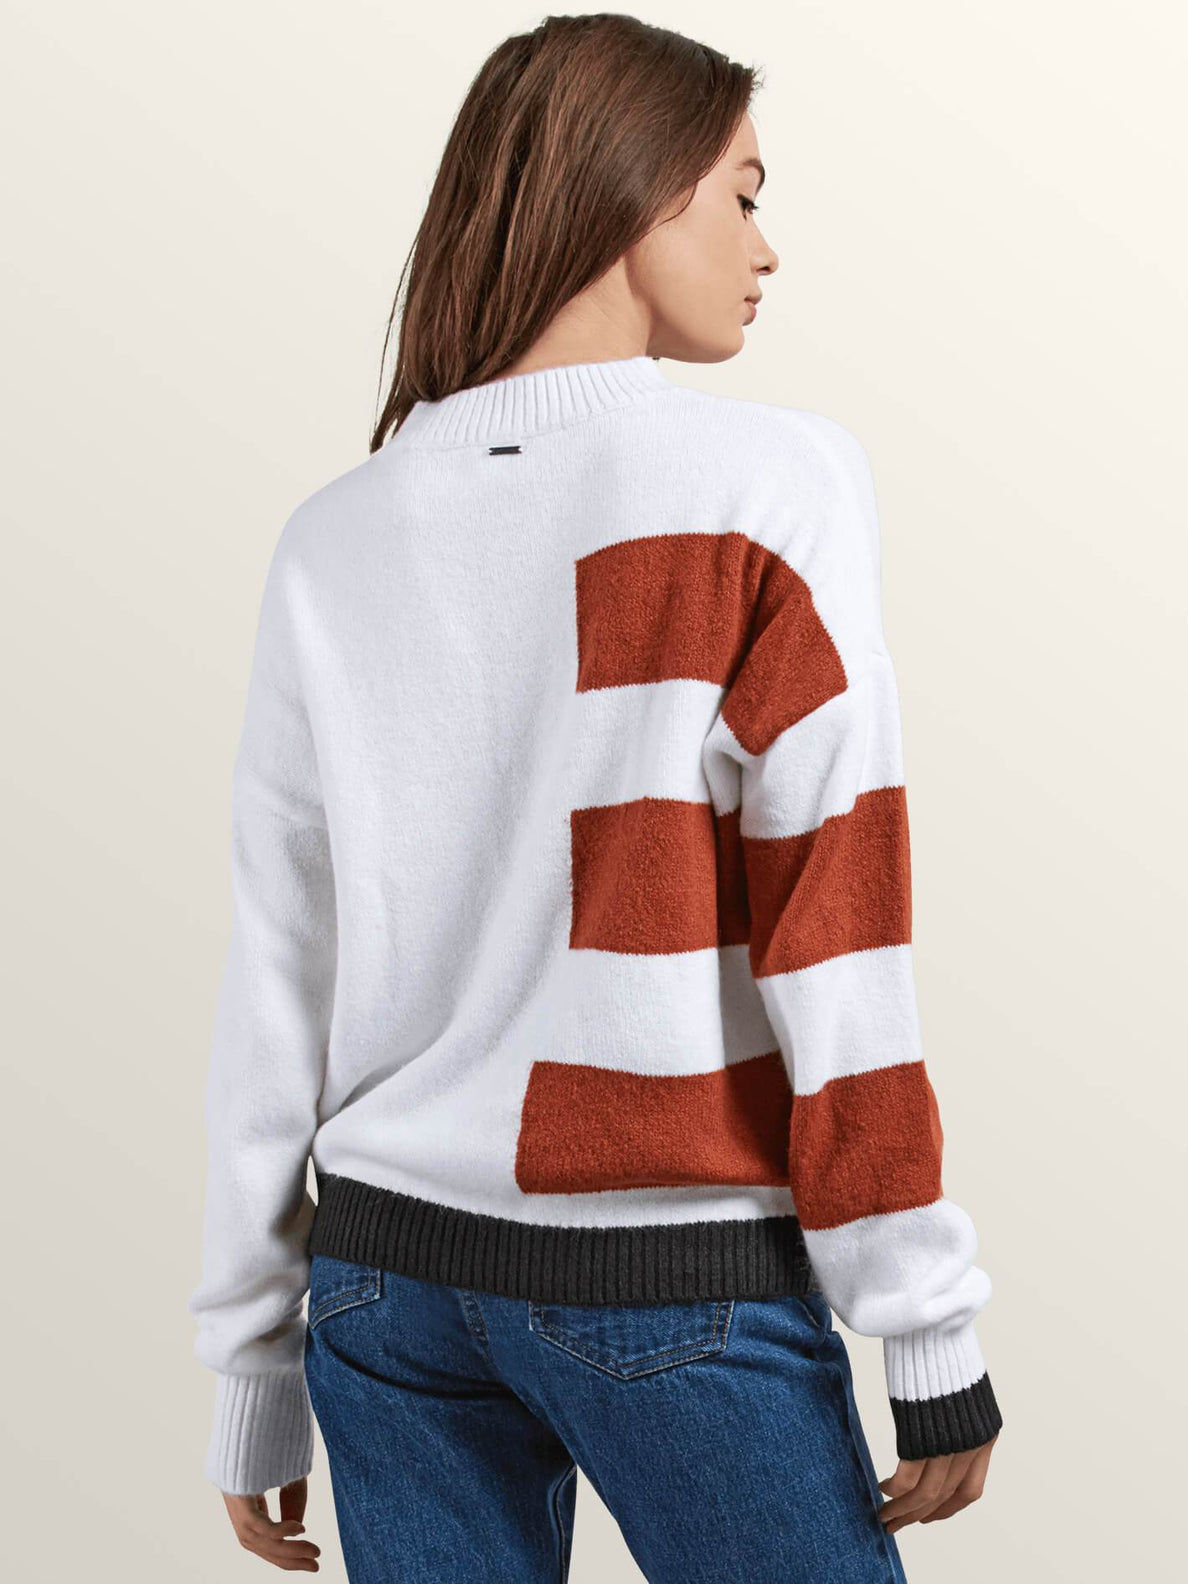 Cold Band Sweater In White, Back View